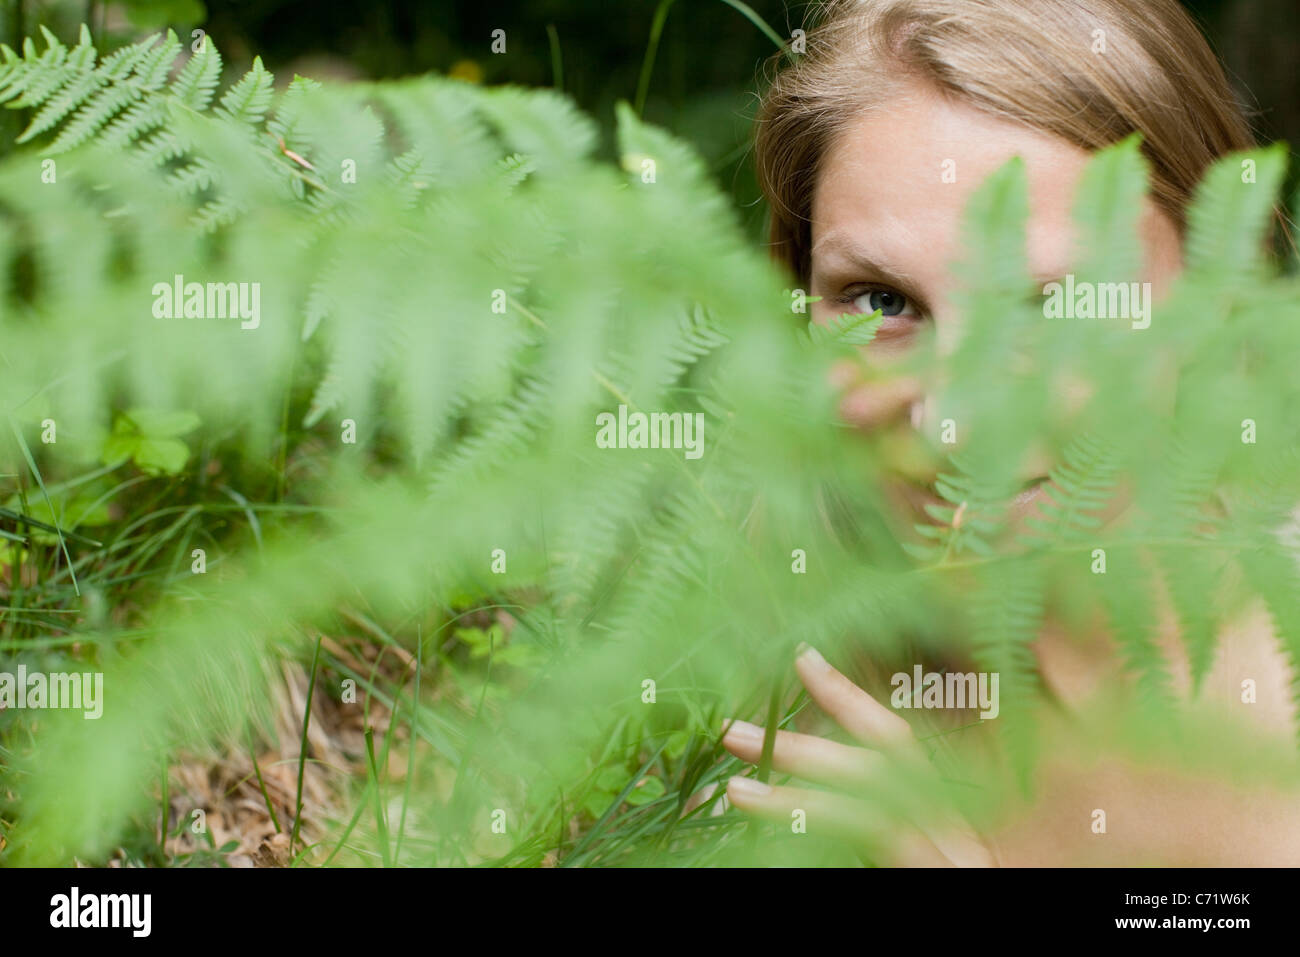 Woman peeking through fern frond, portrait - Stock Image